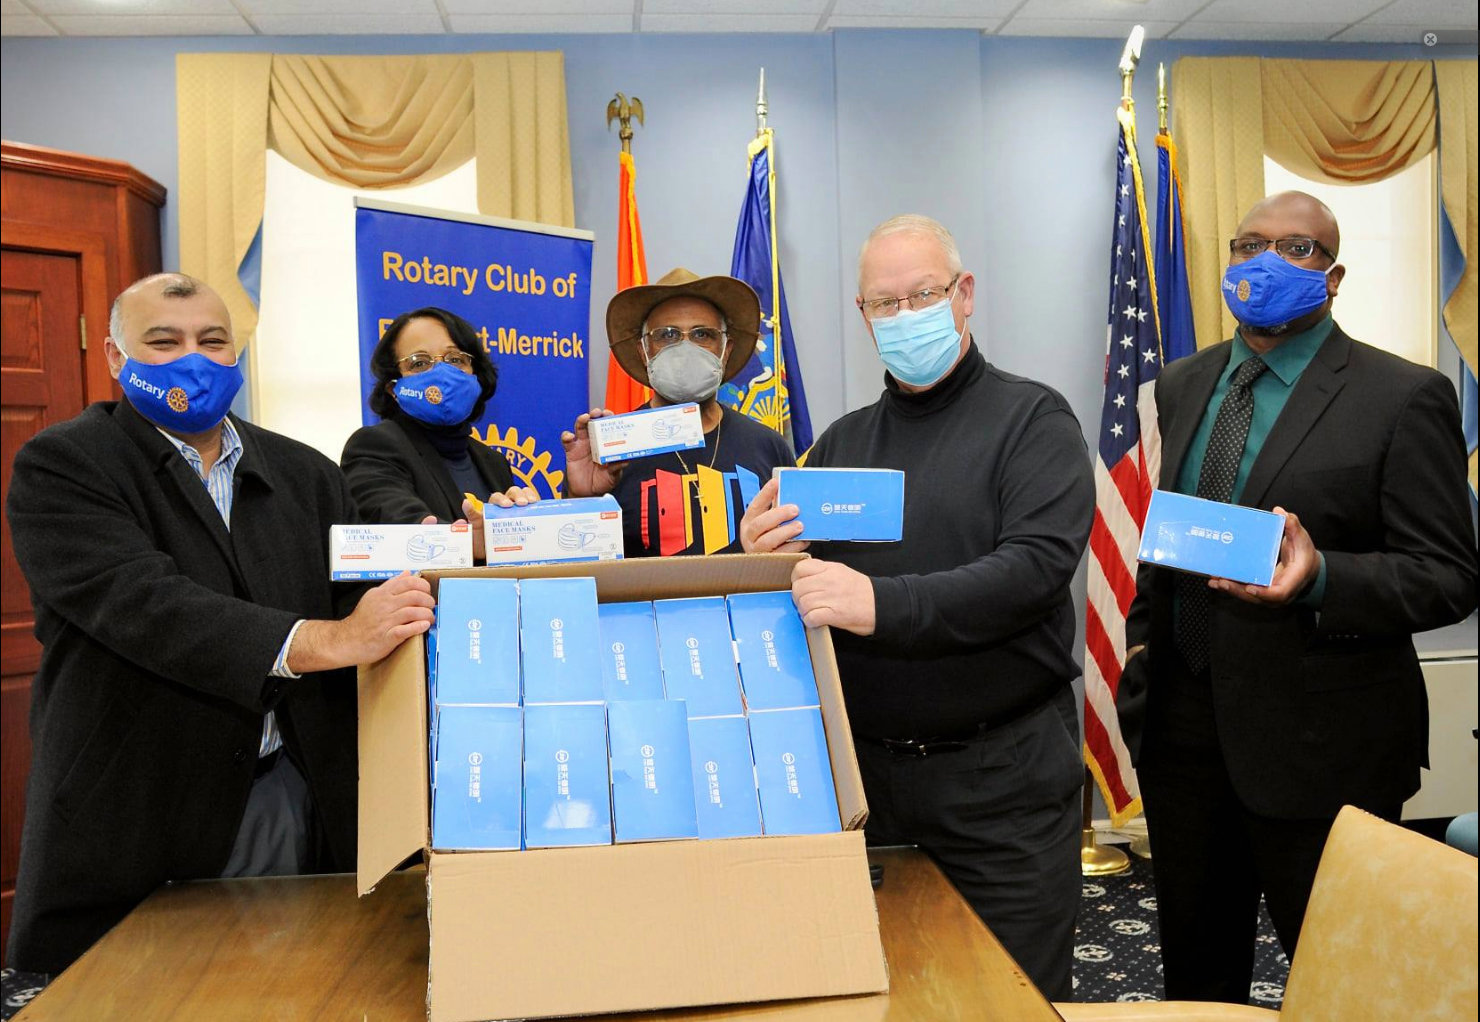 Freeport Mayor Robert Kennedy, second from the right, accepted 2,000 masks from Freeport-Merrick Rotary Club members, from the left, Ken Dookram, Florence Marc-Charles, Eddy Marc-Charles and Marc Rigueur on Feb. 12.